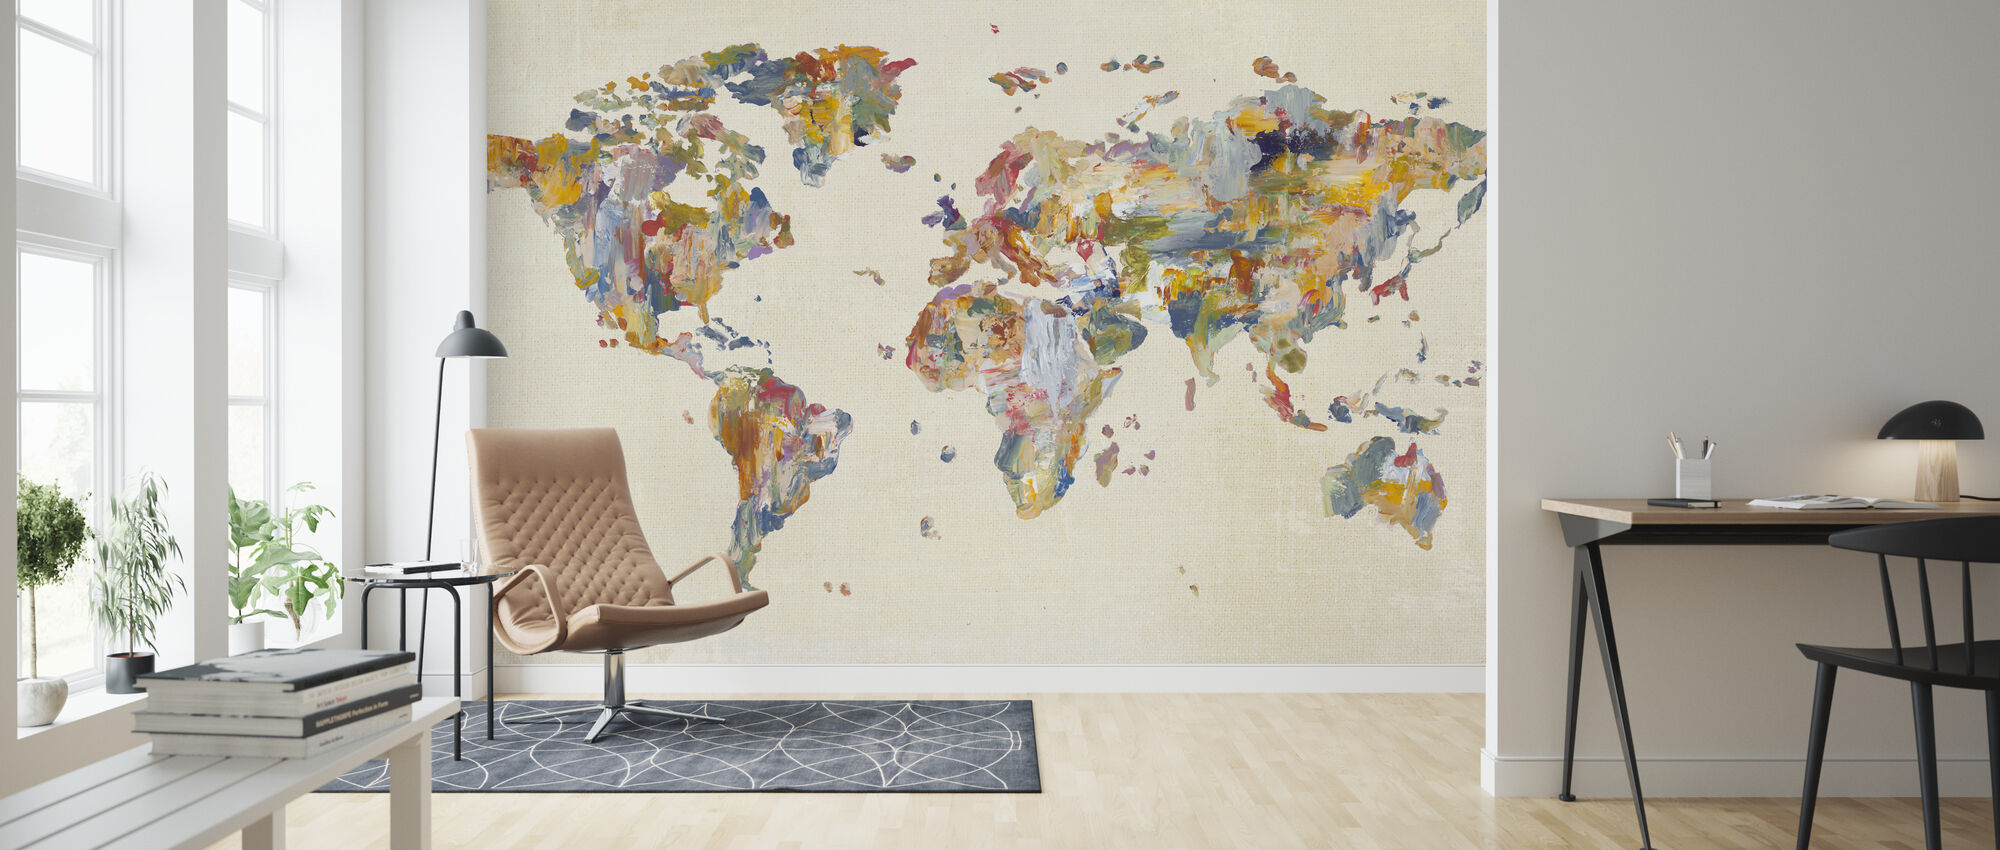 Global Palettes Map on Vintage Linen - Wallpaper - Living Room